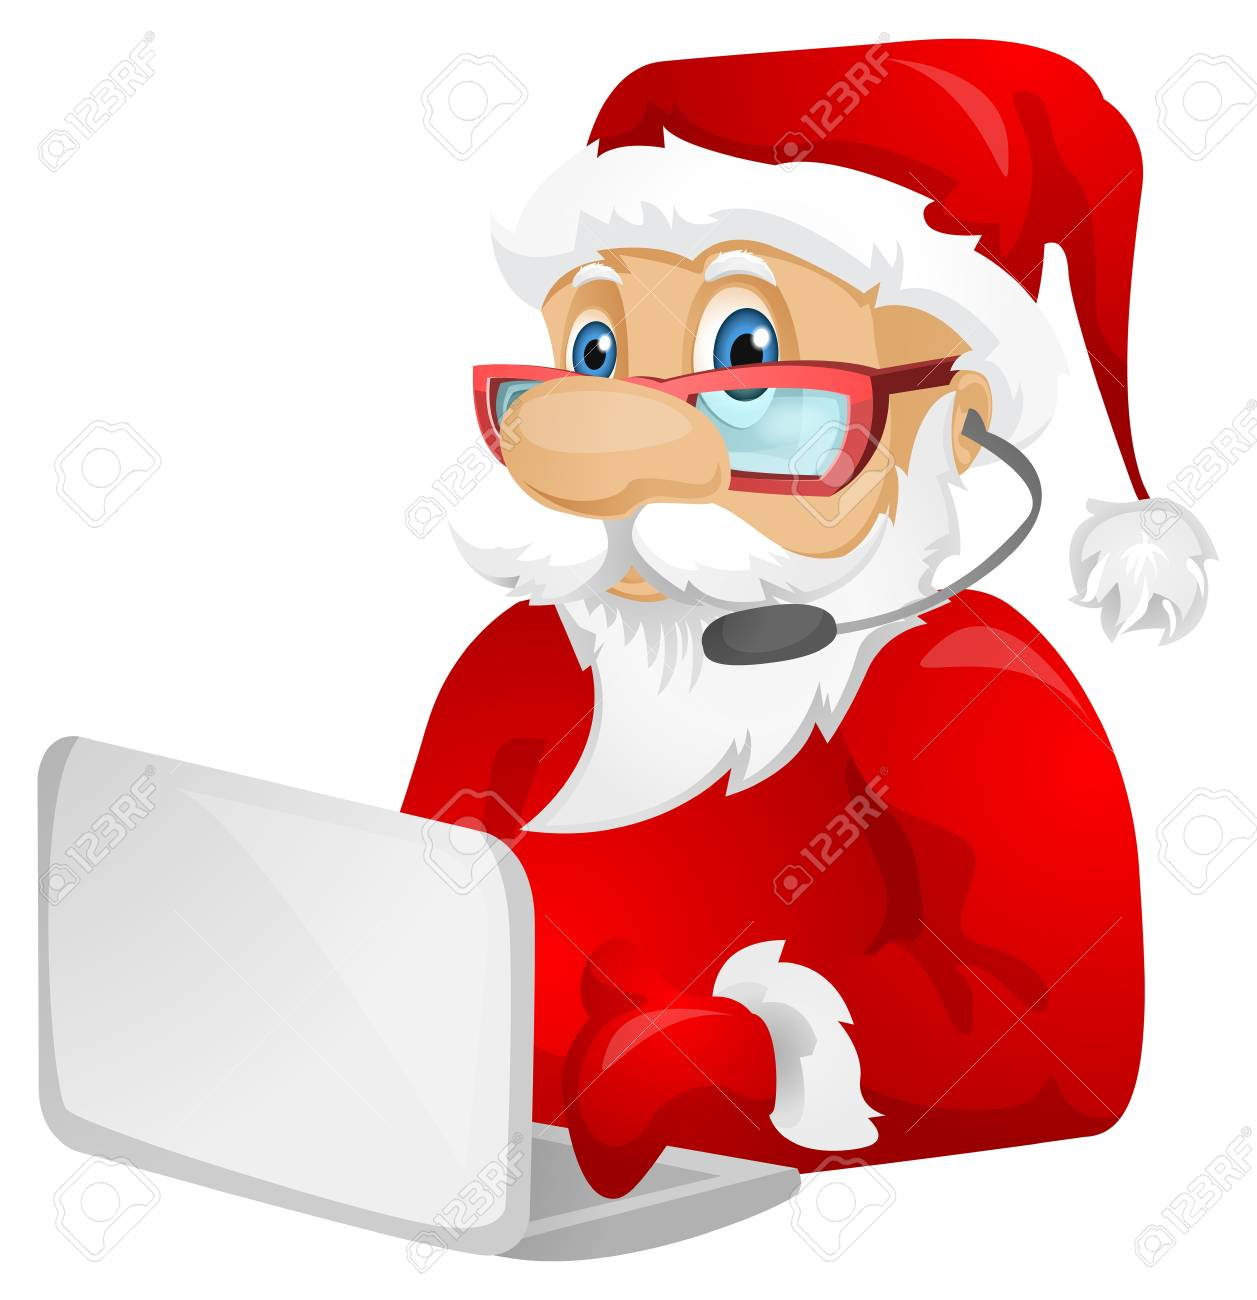 Santa Claus Stock Photo - 20857693